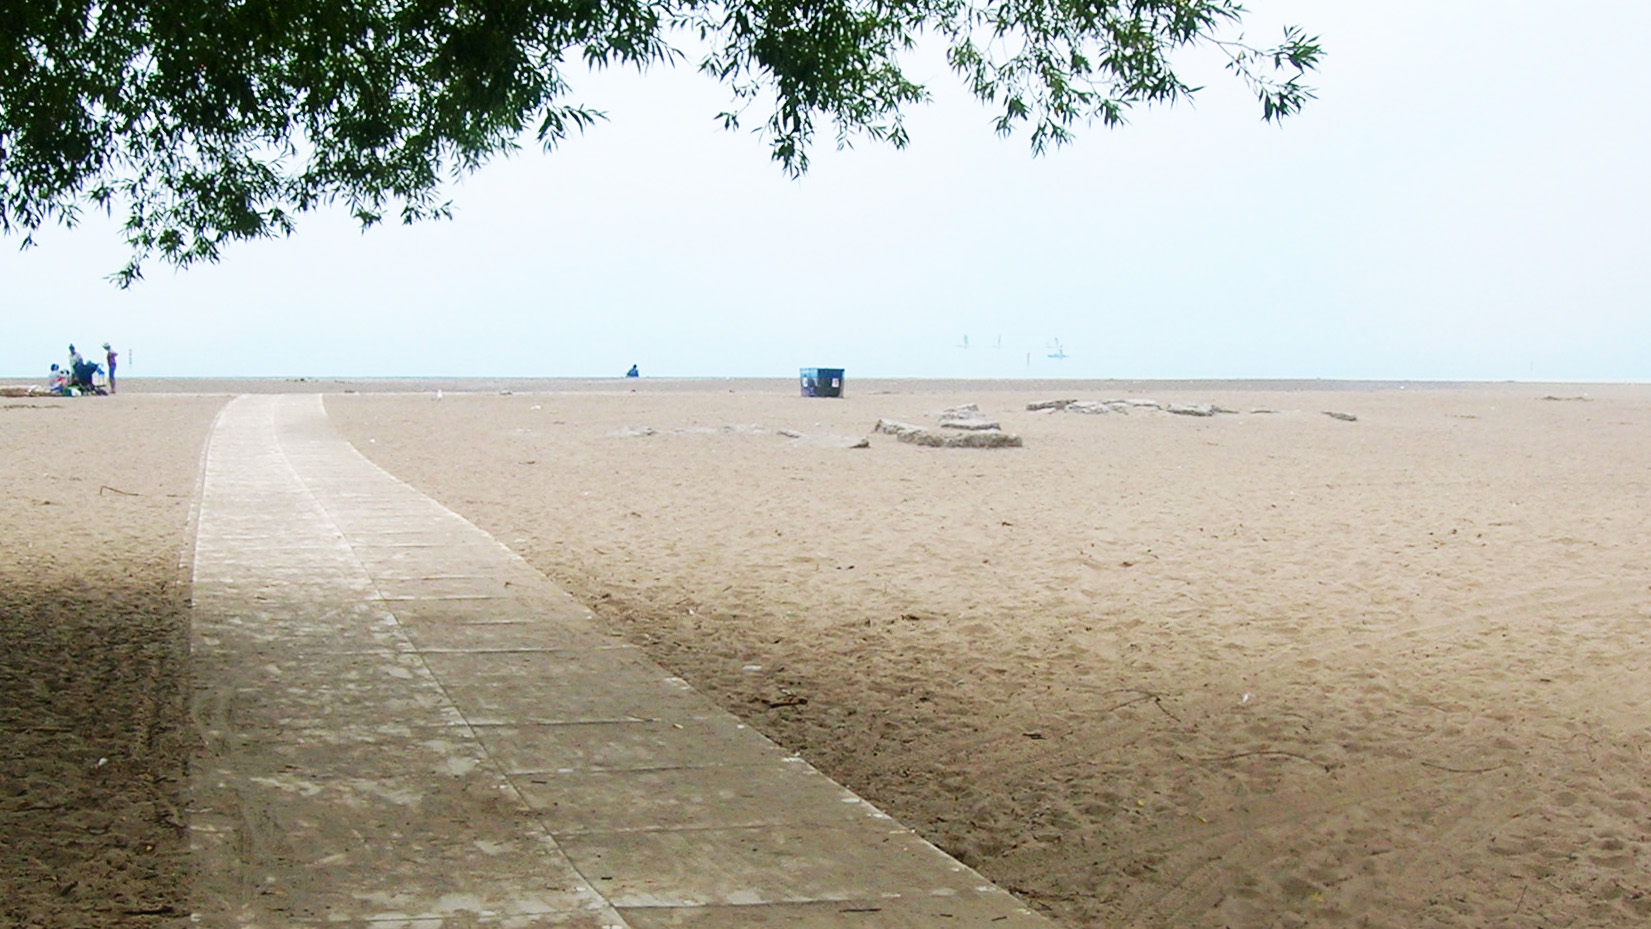 mesh pathway extends over sand towards the water